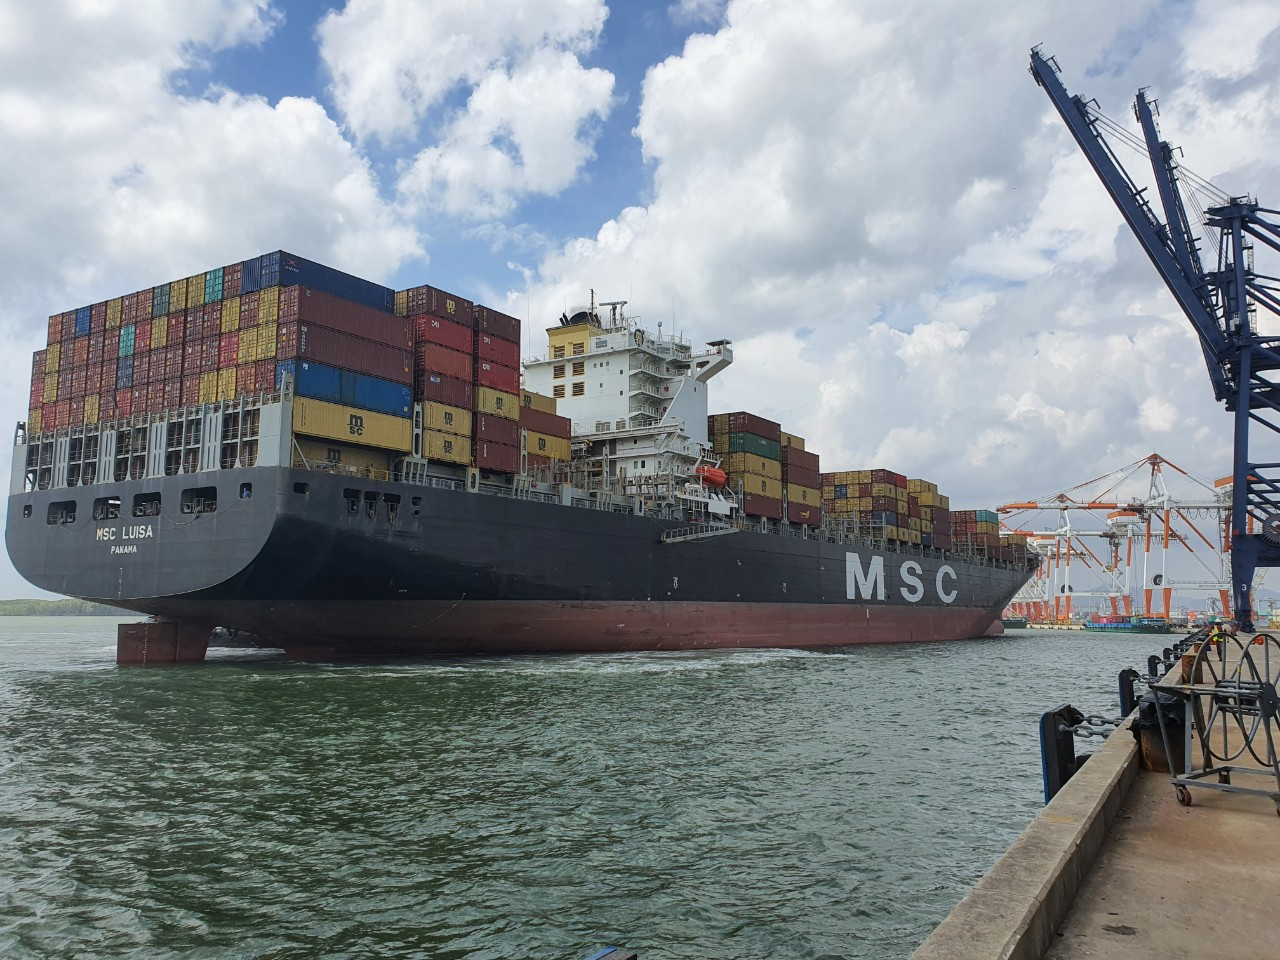 M/V MSC LUISA calling SSIT on August 18th, 2020 with total volume of 3,977 TEU